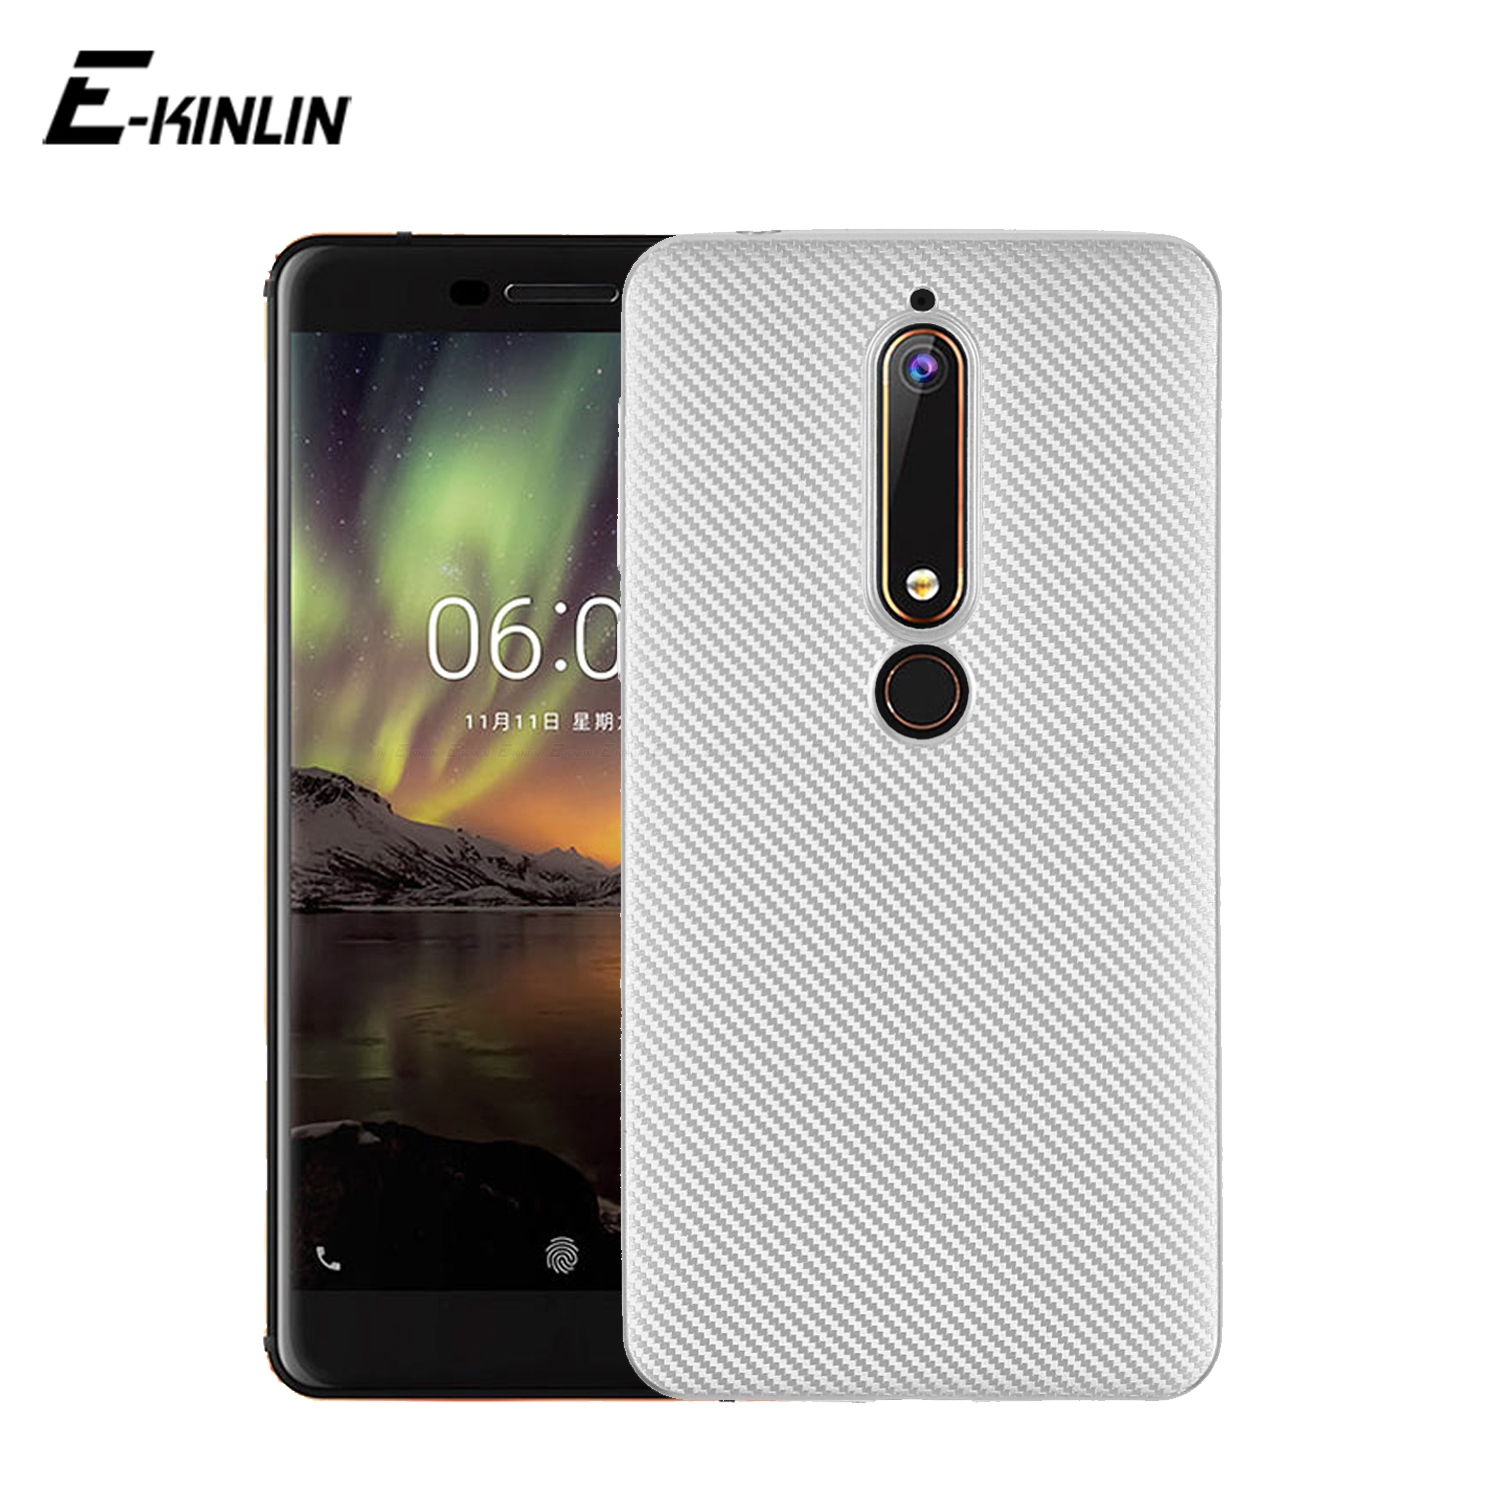 Fashion Ultra Thin Carbon Fiber Texture Case For Nokia X6 6 2018 6.1 5.1 3.1 2.1 8 7 Plus 5 3 2 1 Soft Silicone Phone Back Cover